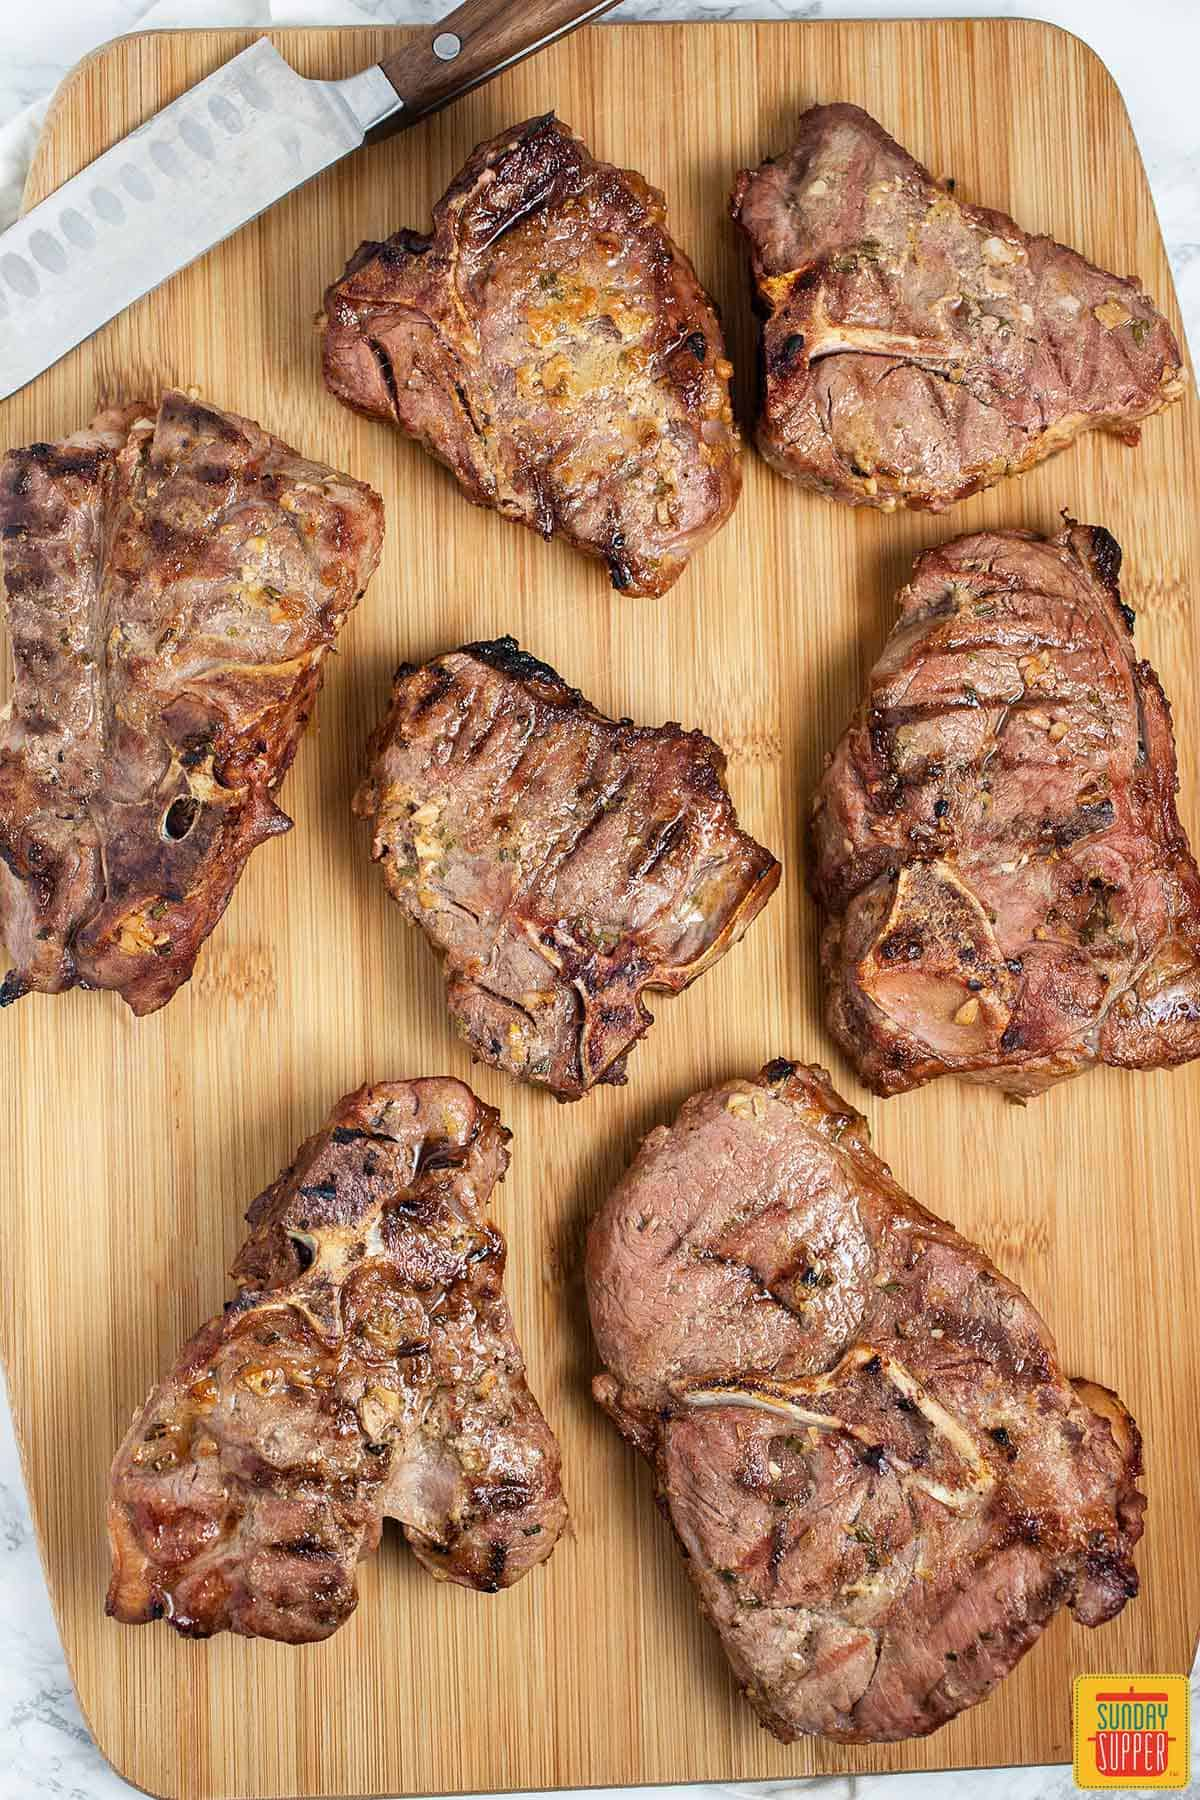 A cutting board of grilled lamb chops ready to serve